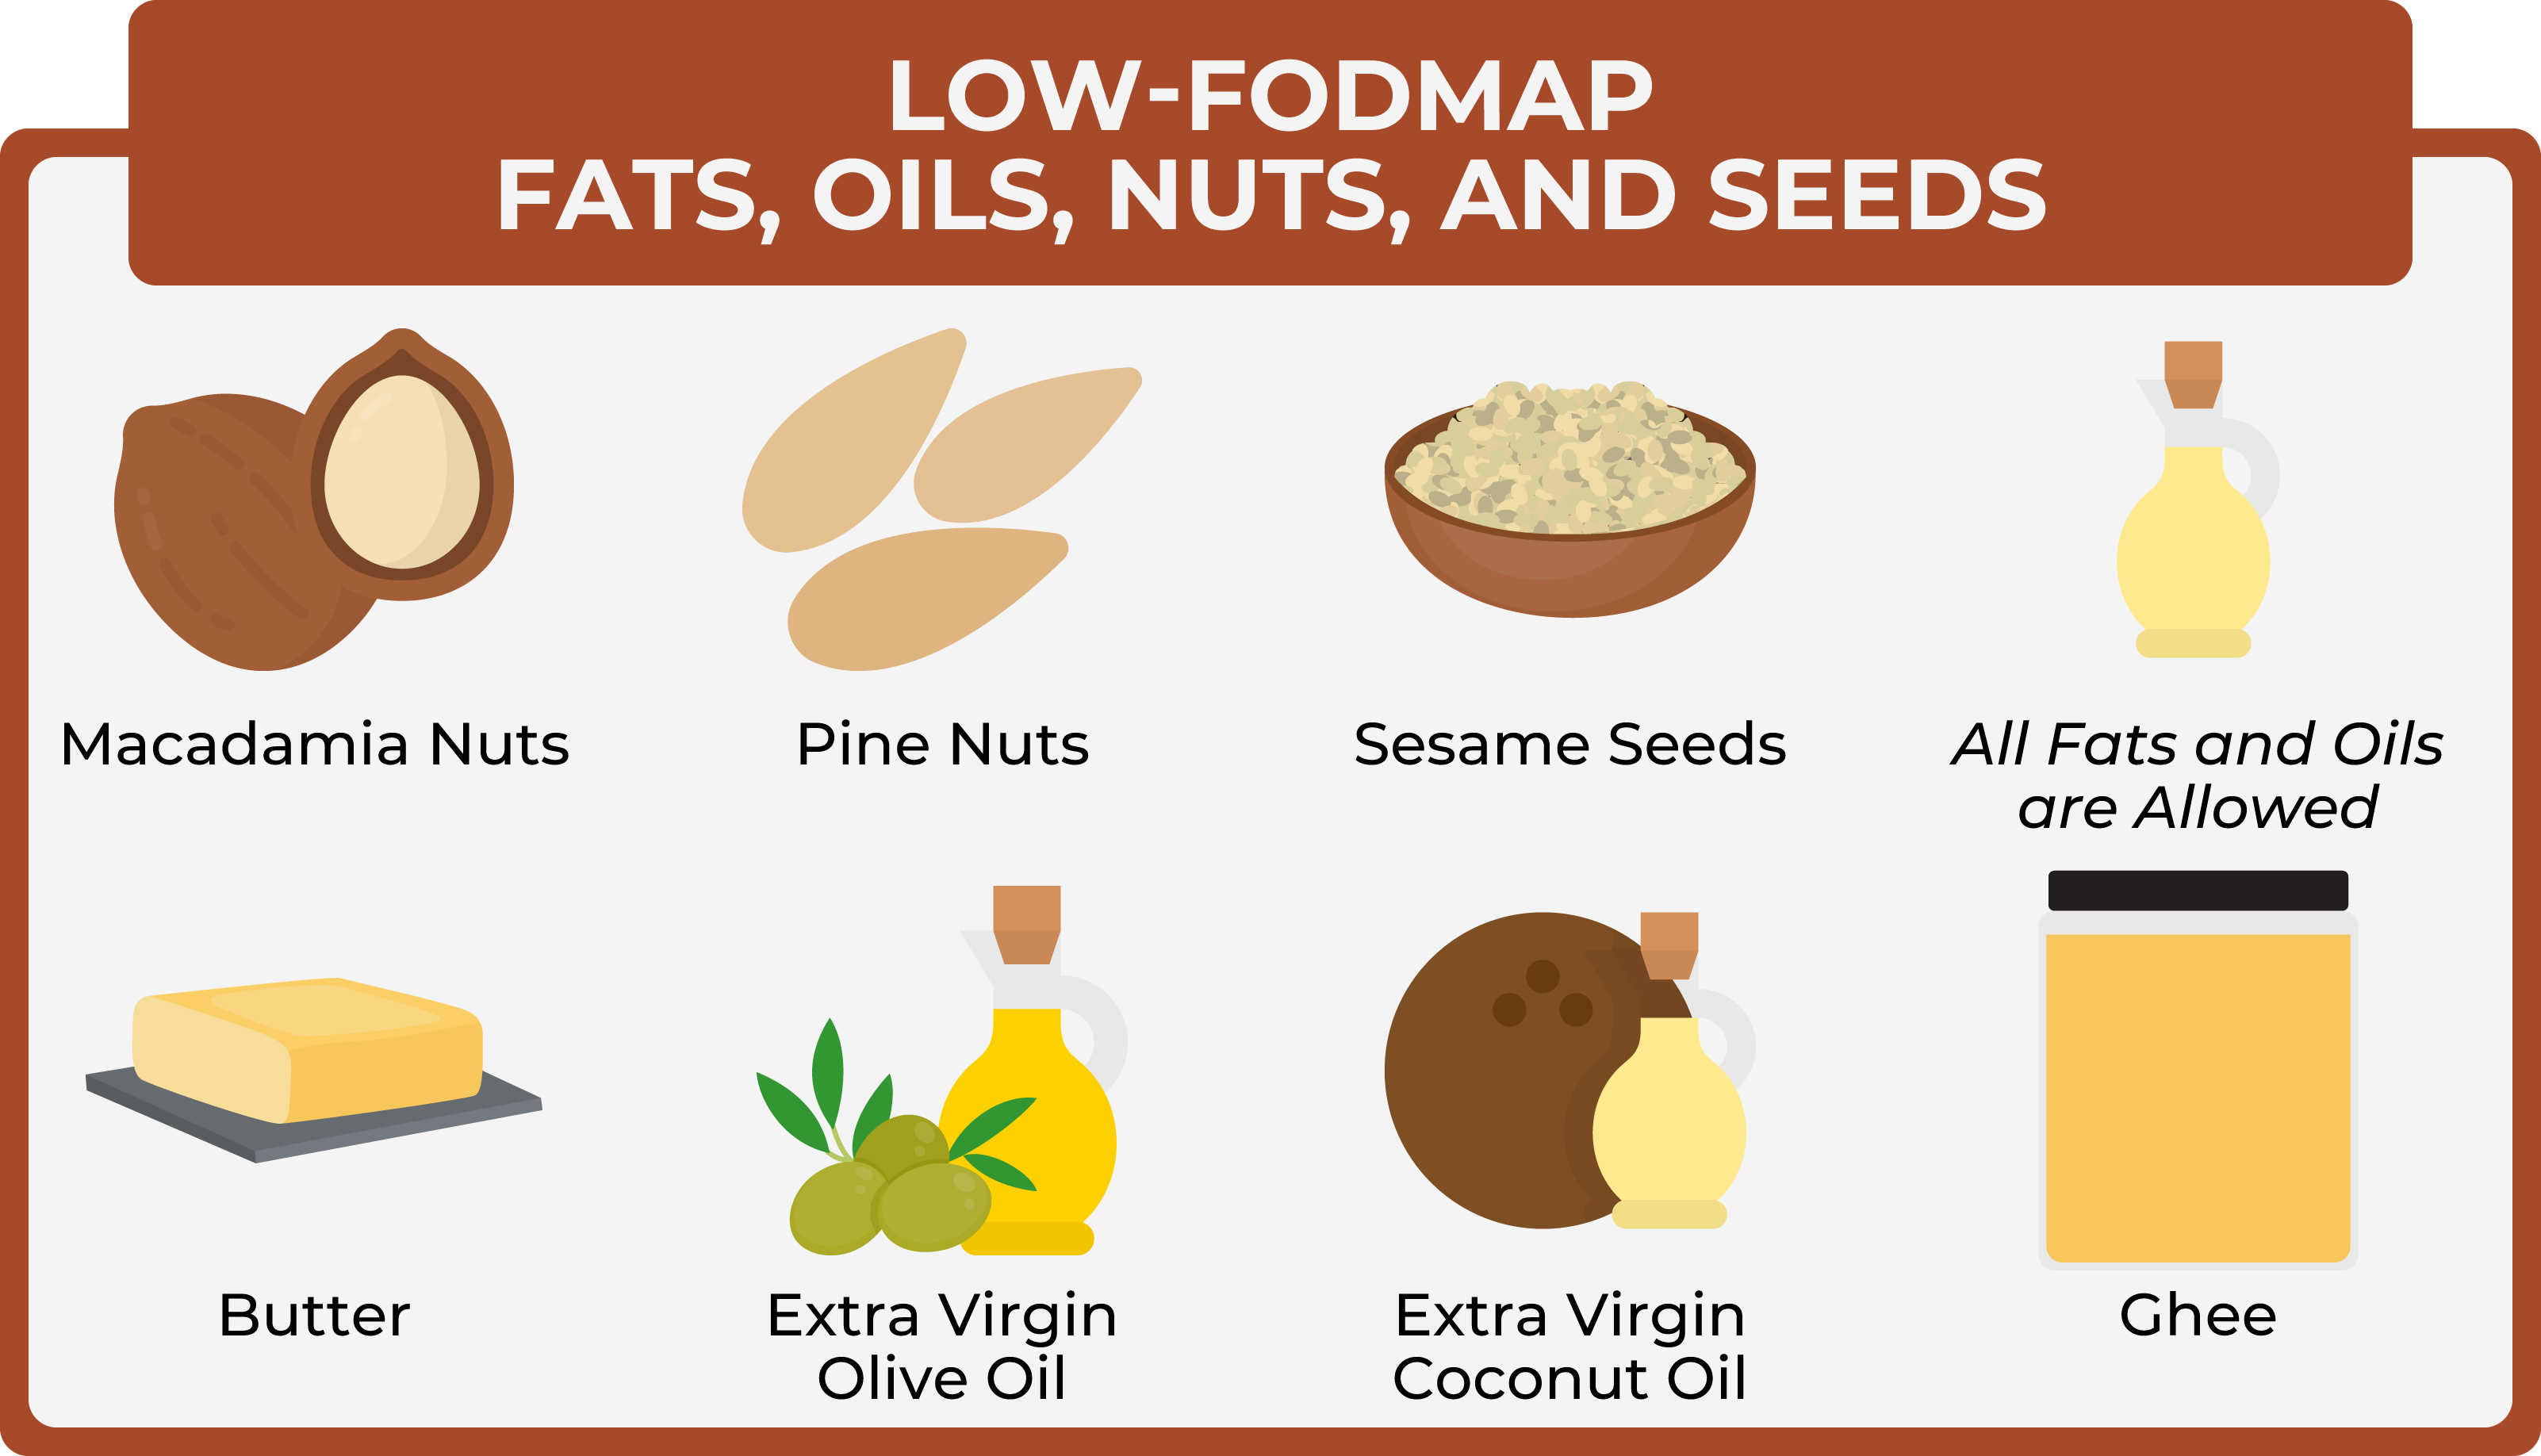 02-2-2_low-fodmap-fats-oils-nuts-seeds.png